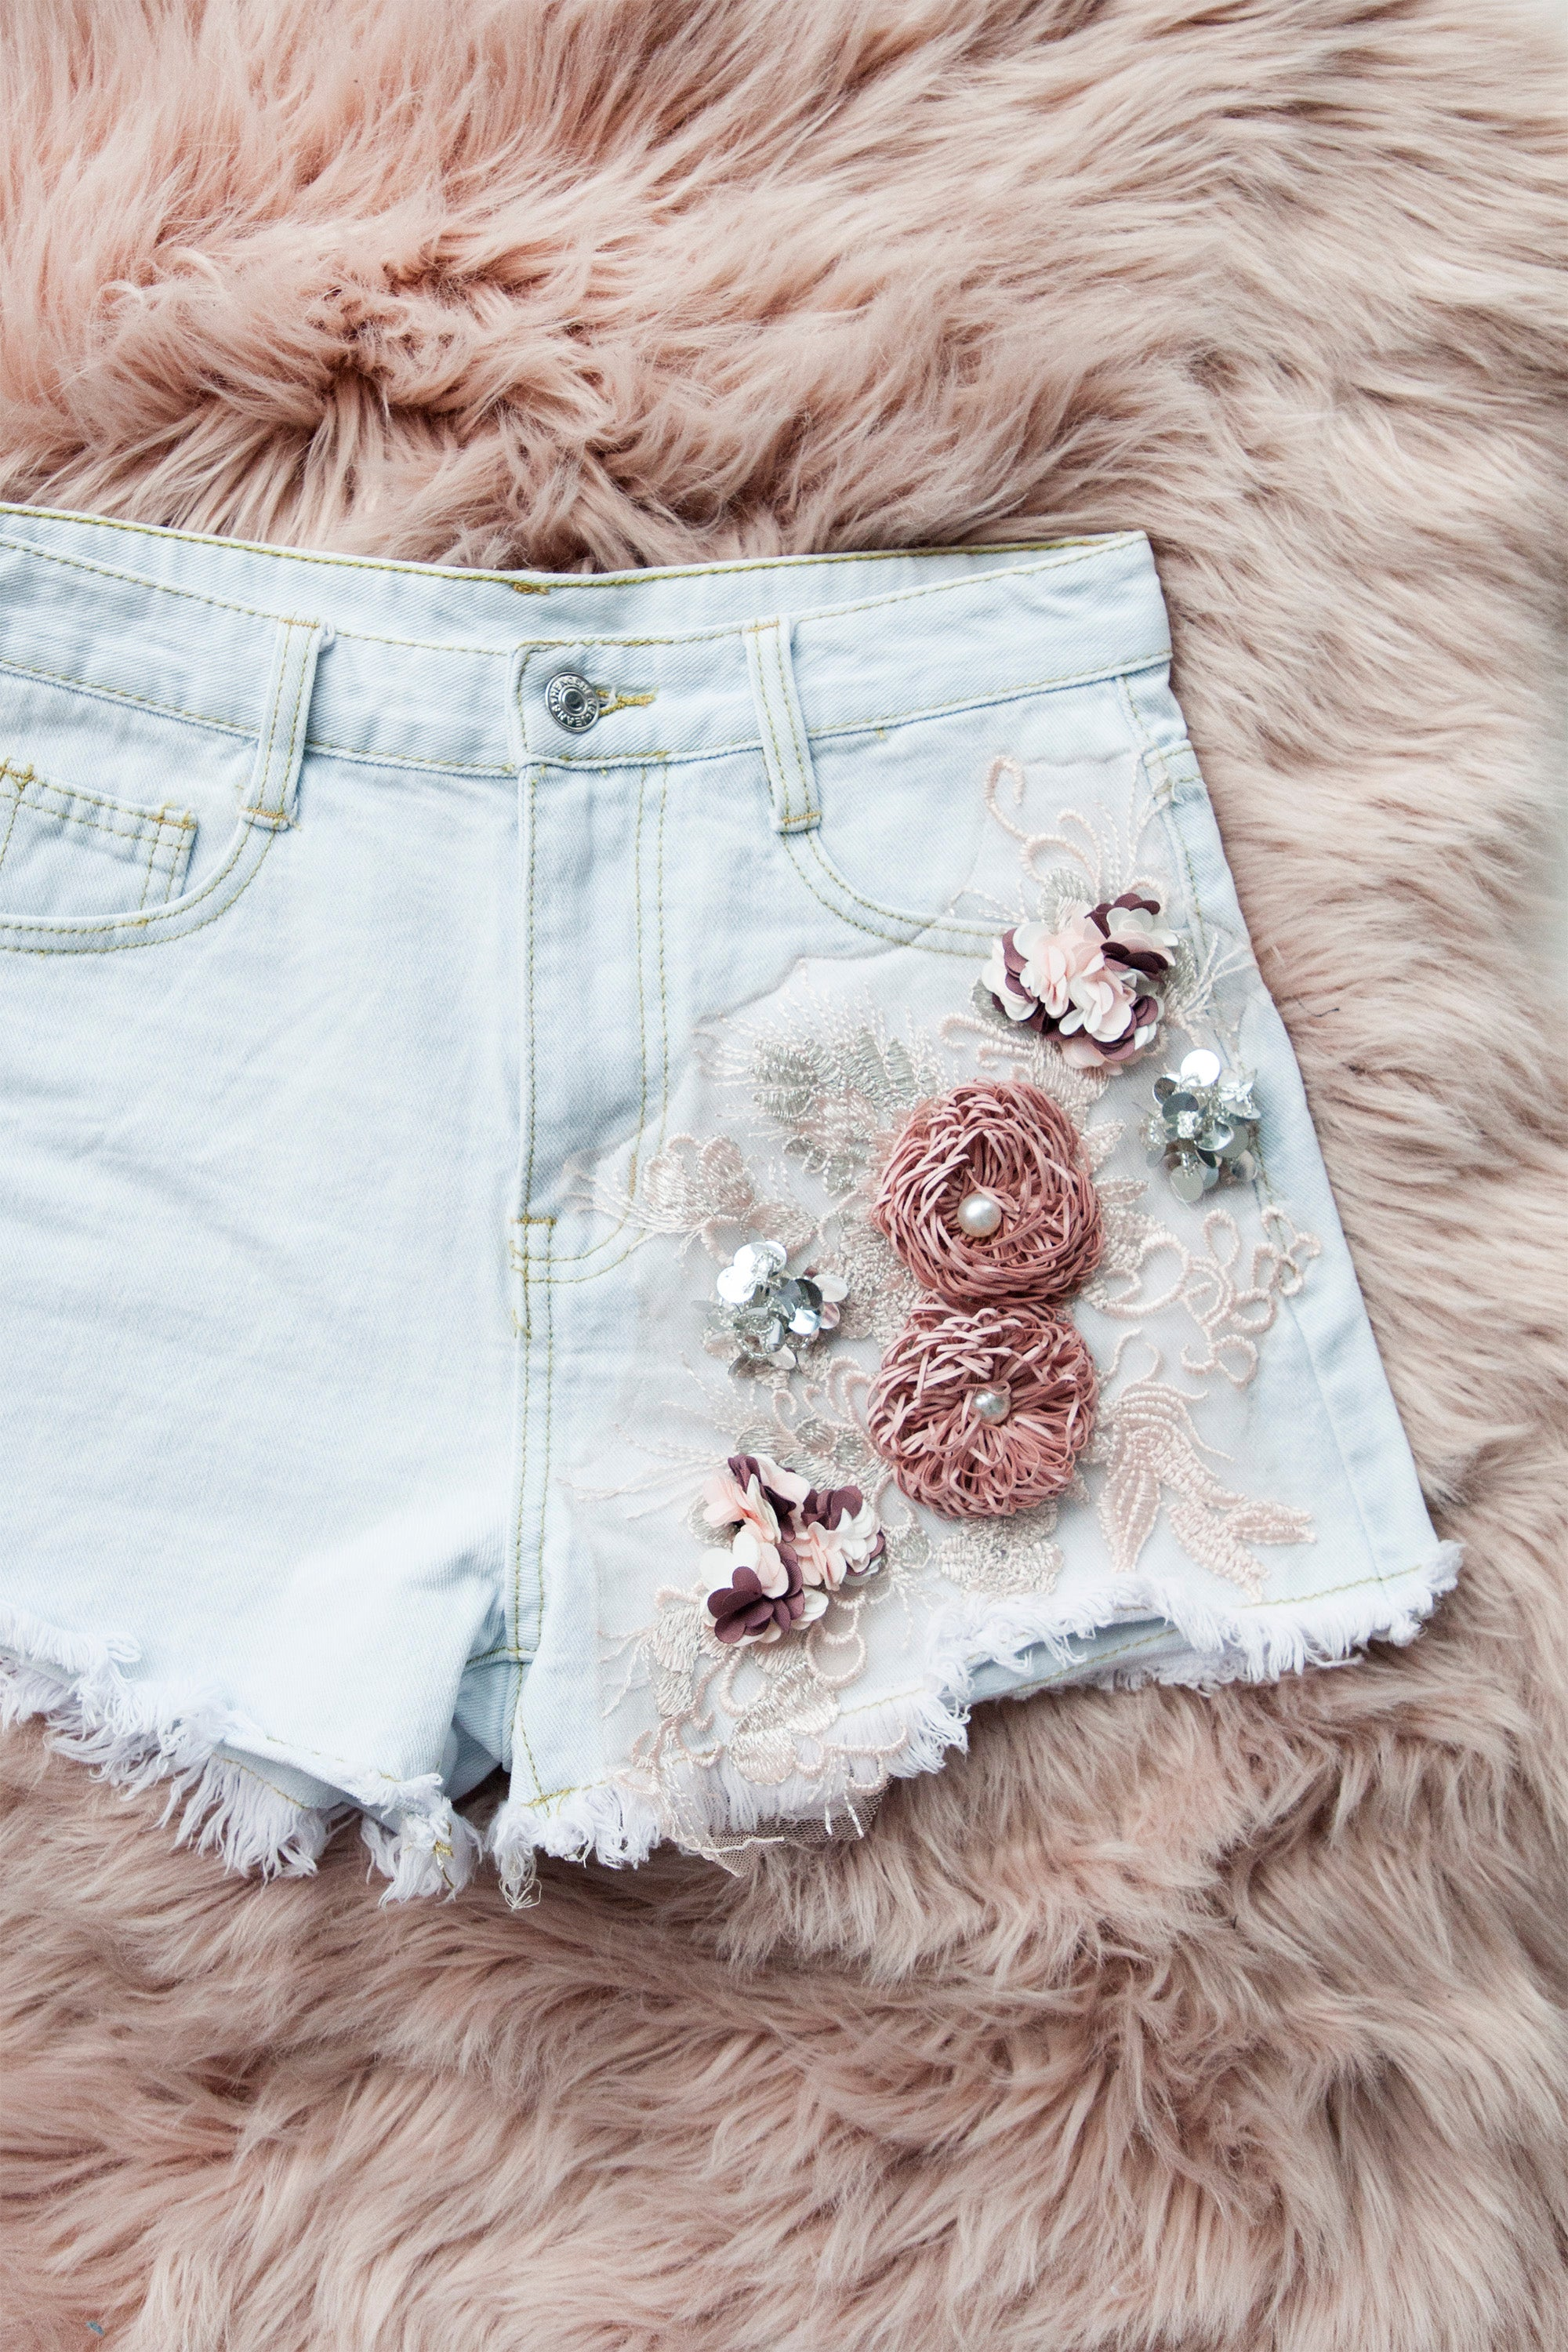 Girlflower Light Jeans - Short